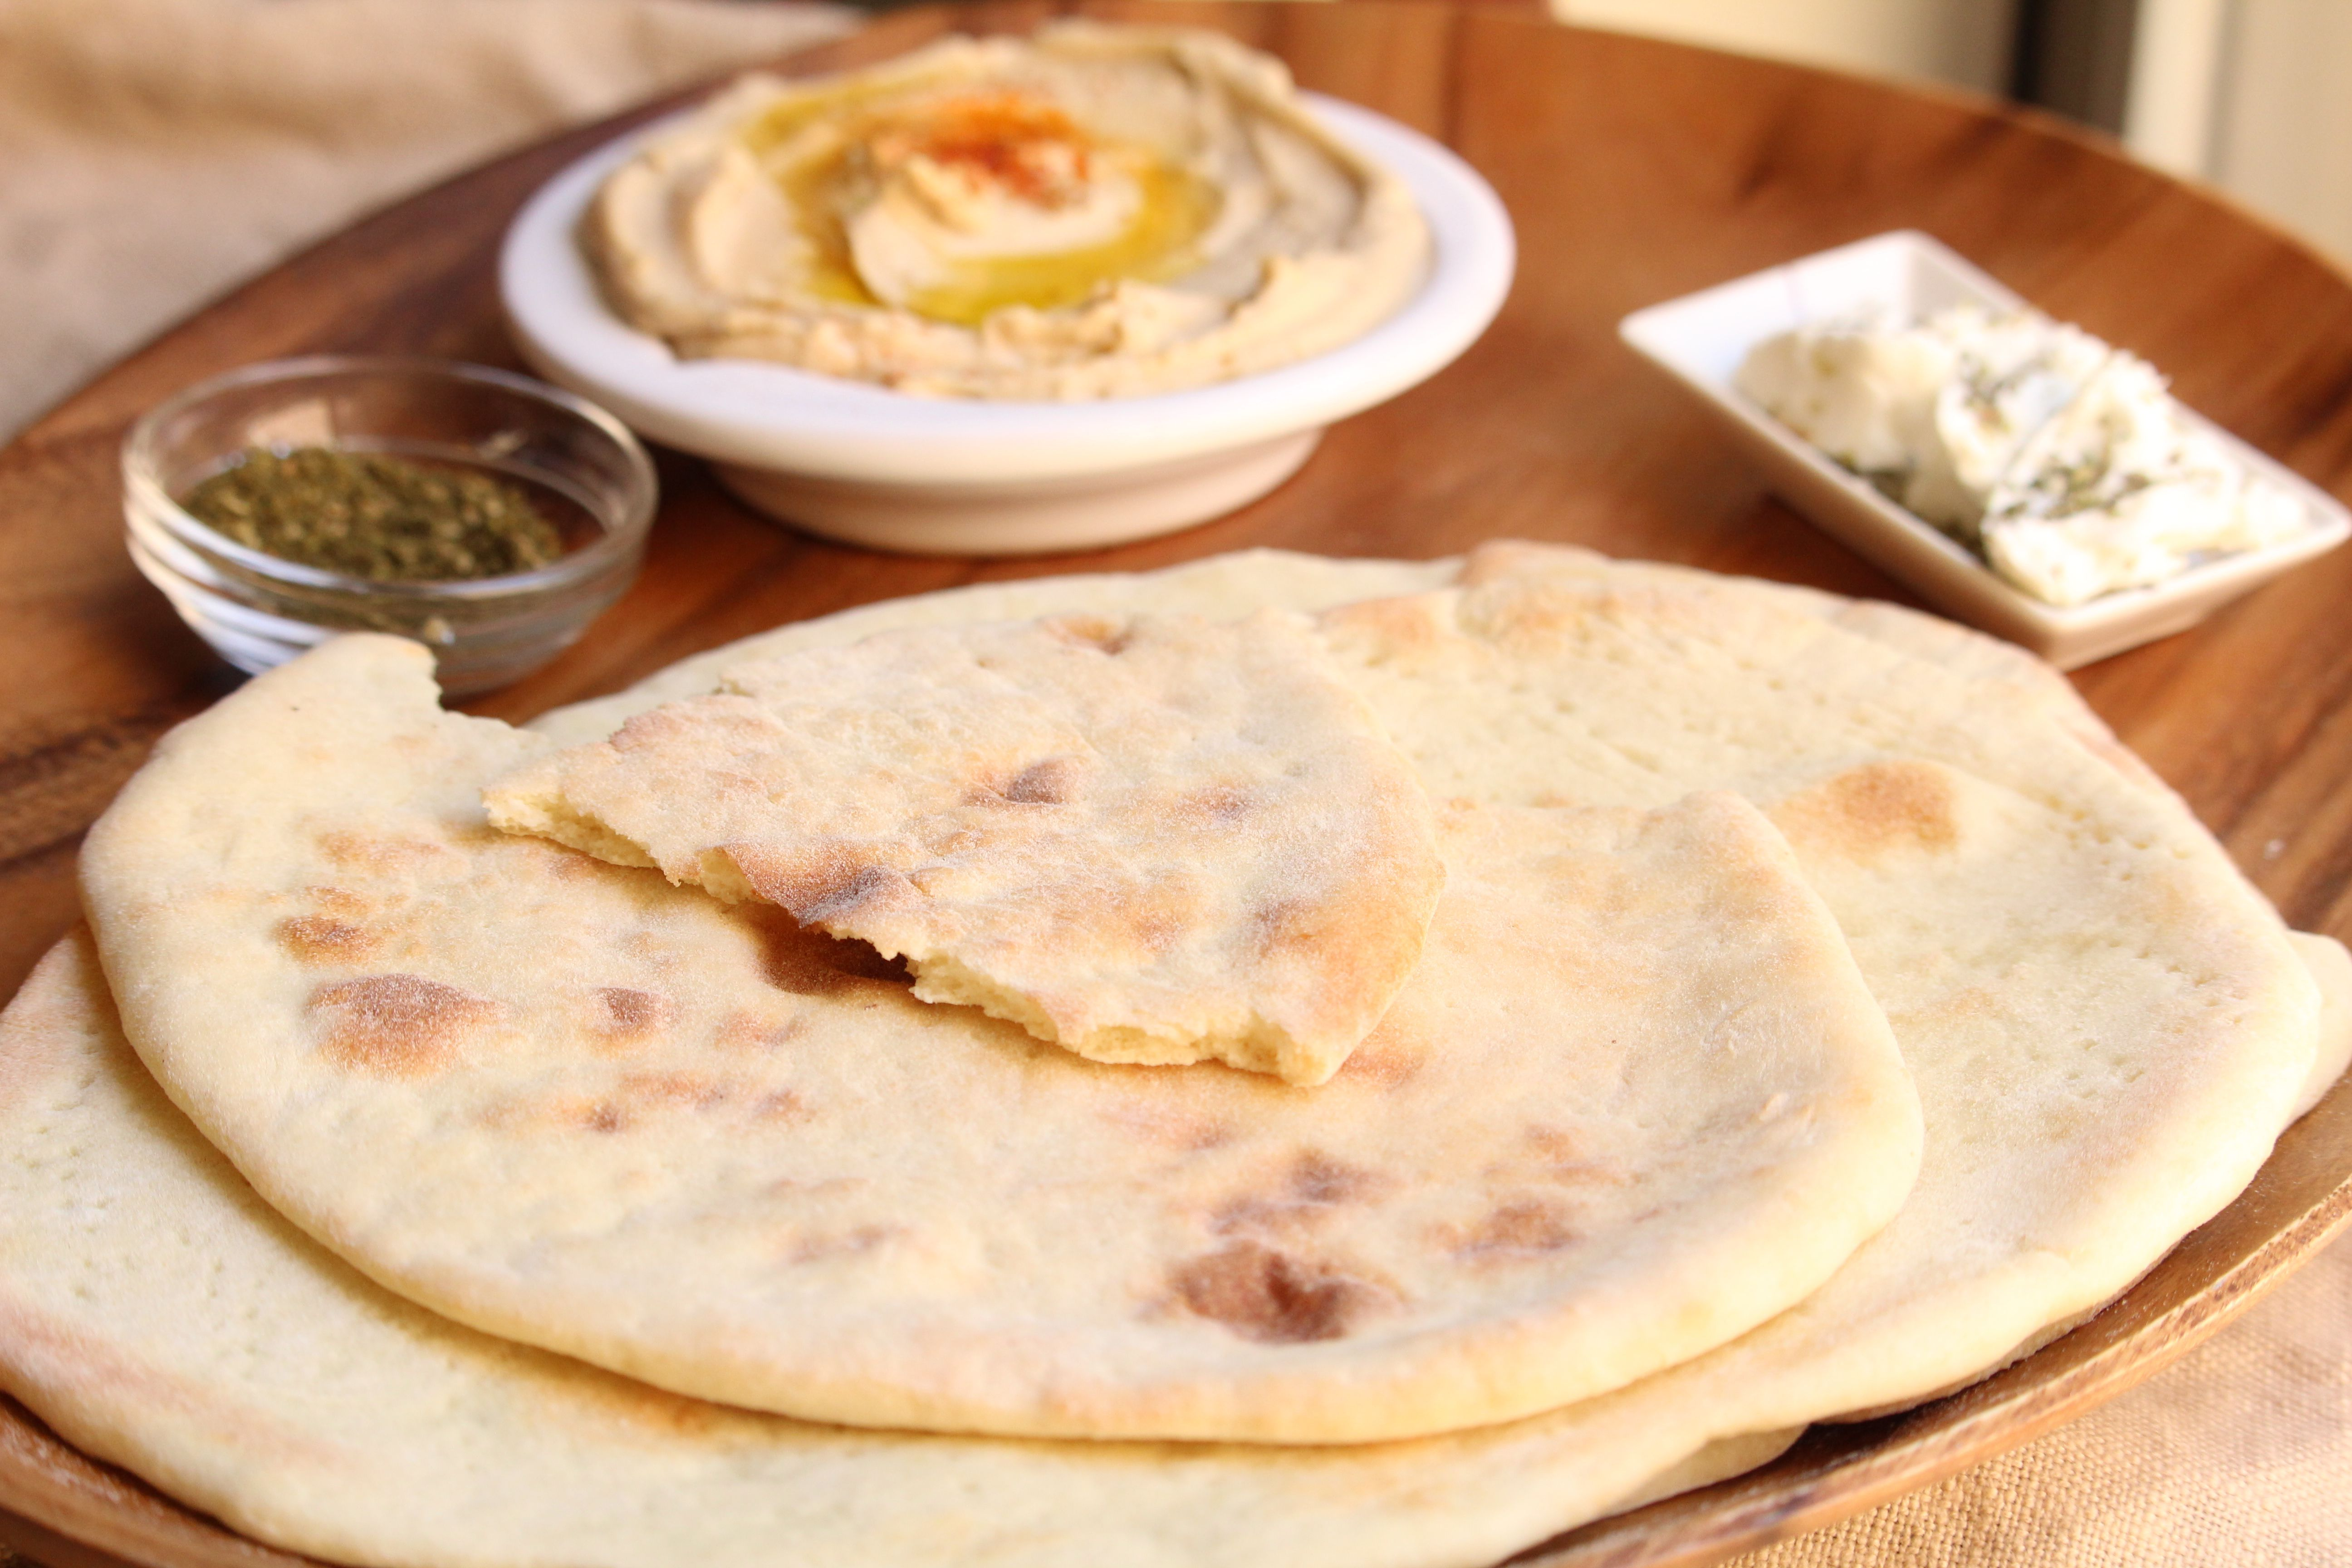 How to Make Your Own Laffa Flatbread From Scratch